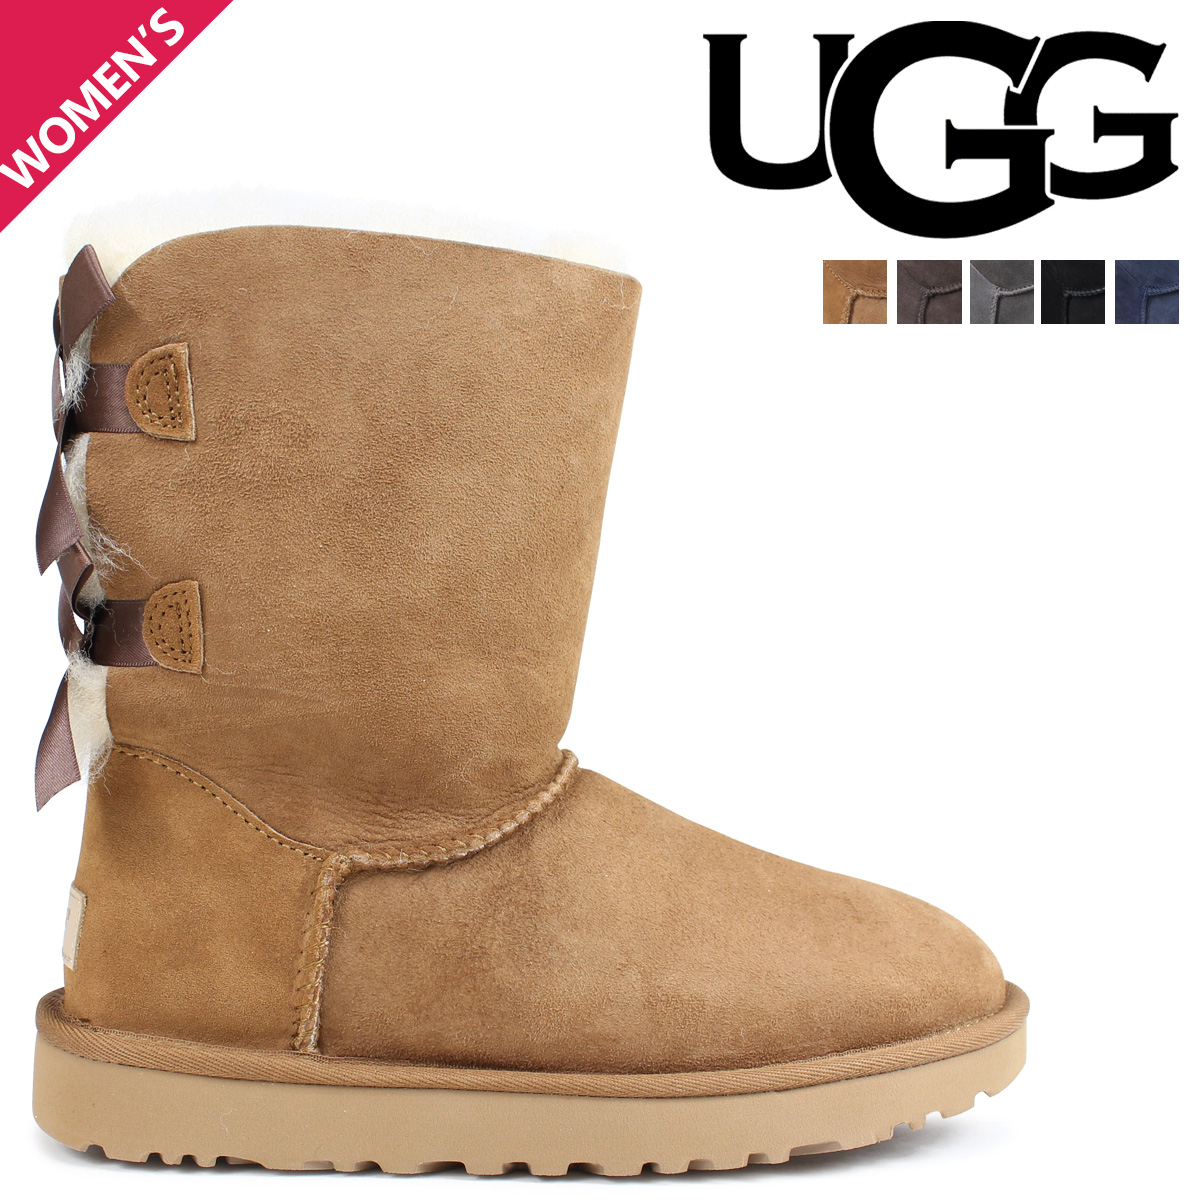 e6428e19281 アグ UGG boots mouton boots Bailey bow tie 2 Lady's WOMENS BAILEY BOW II  1002954 1016225